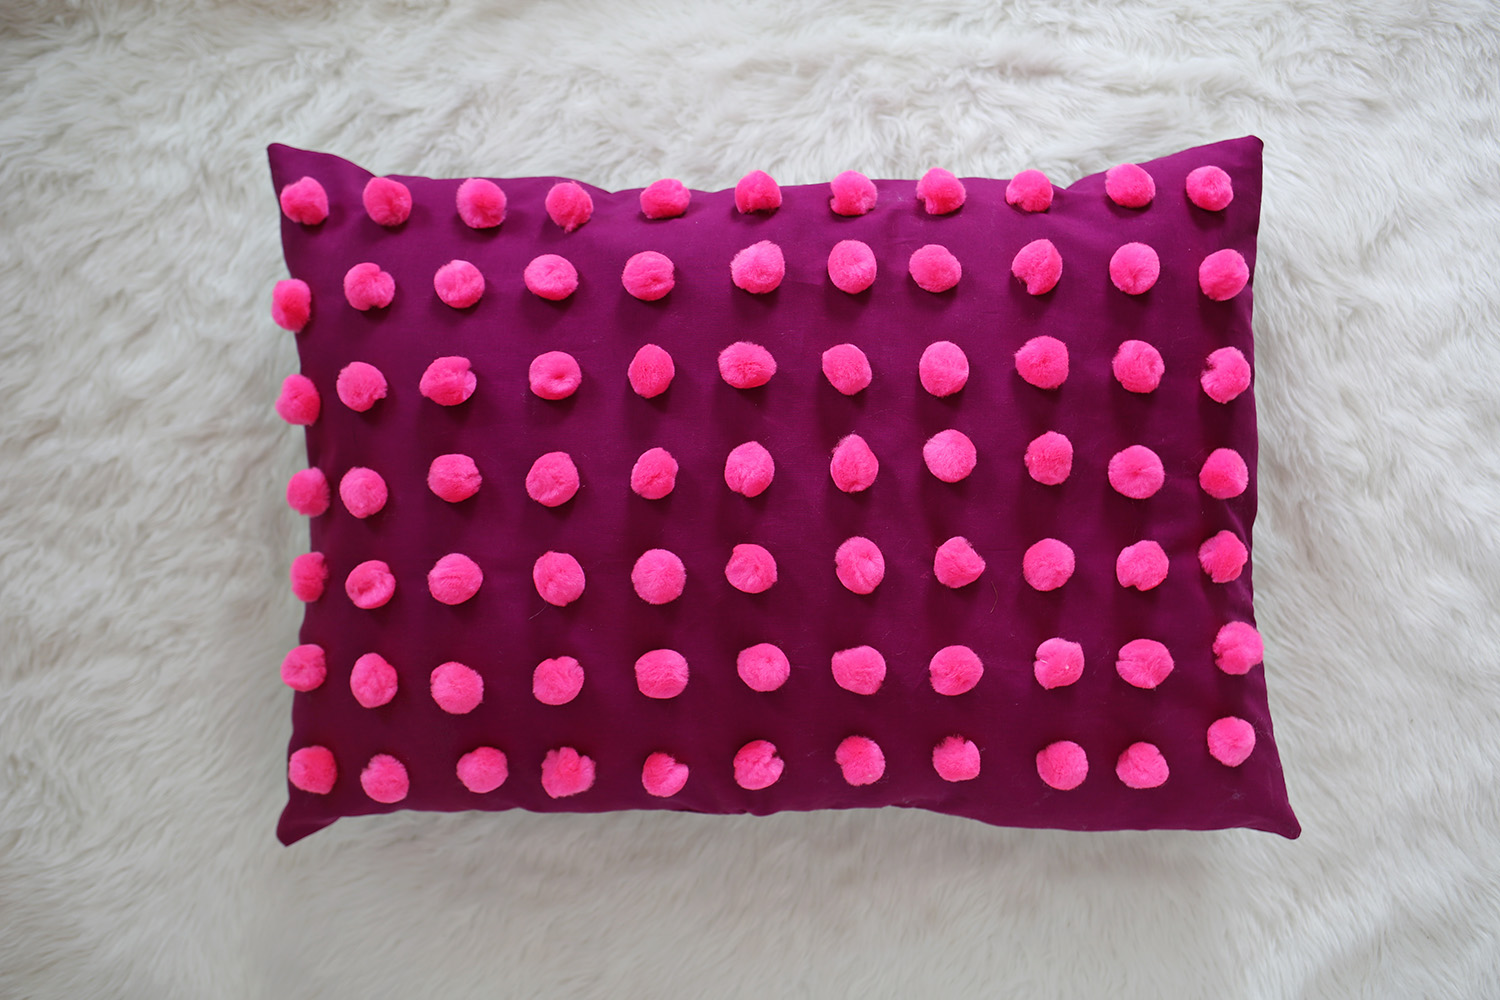 Plum pom pom pillow